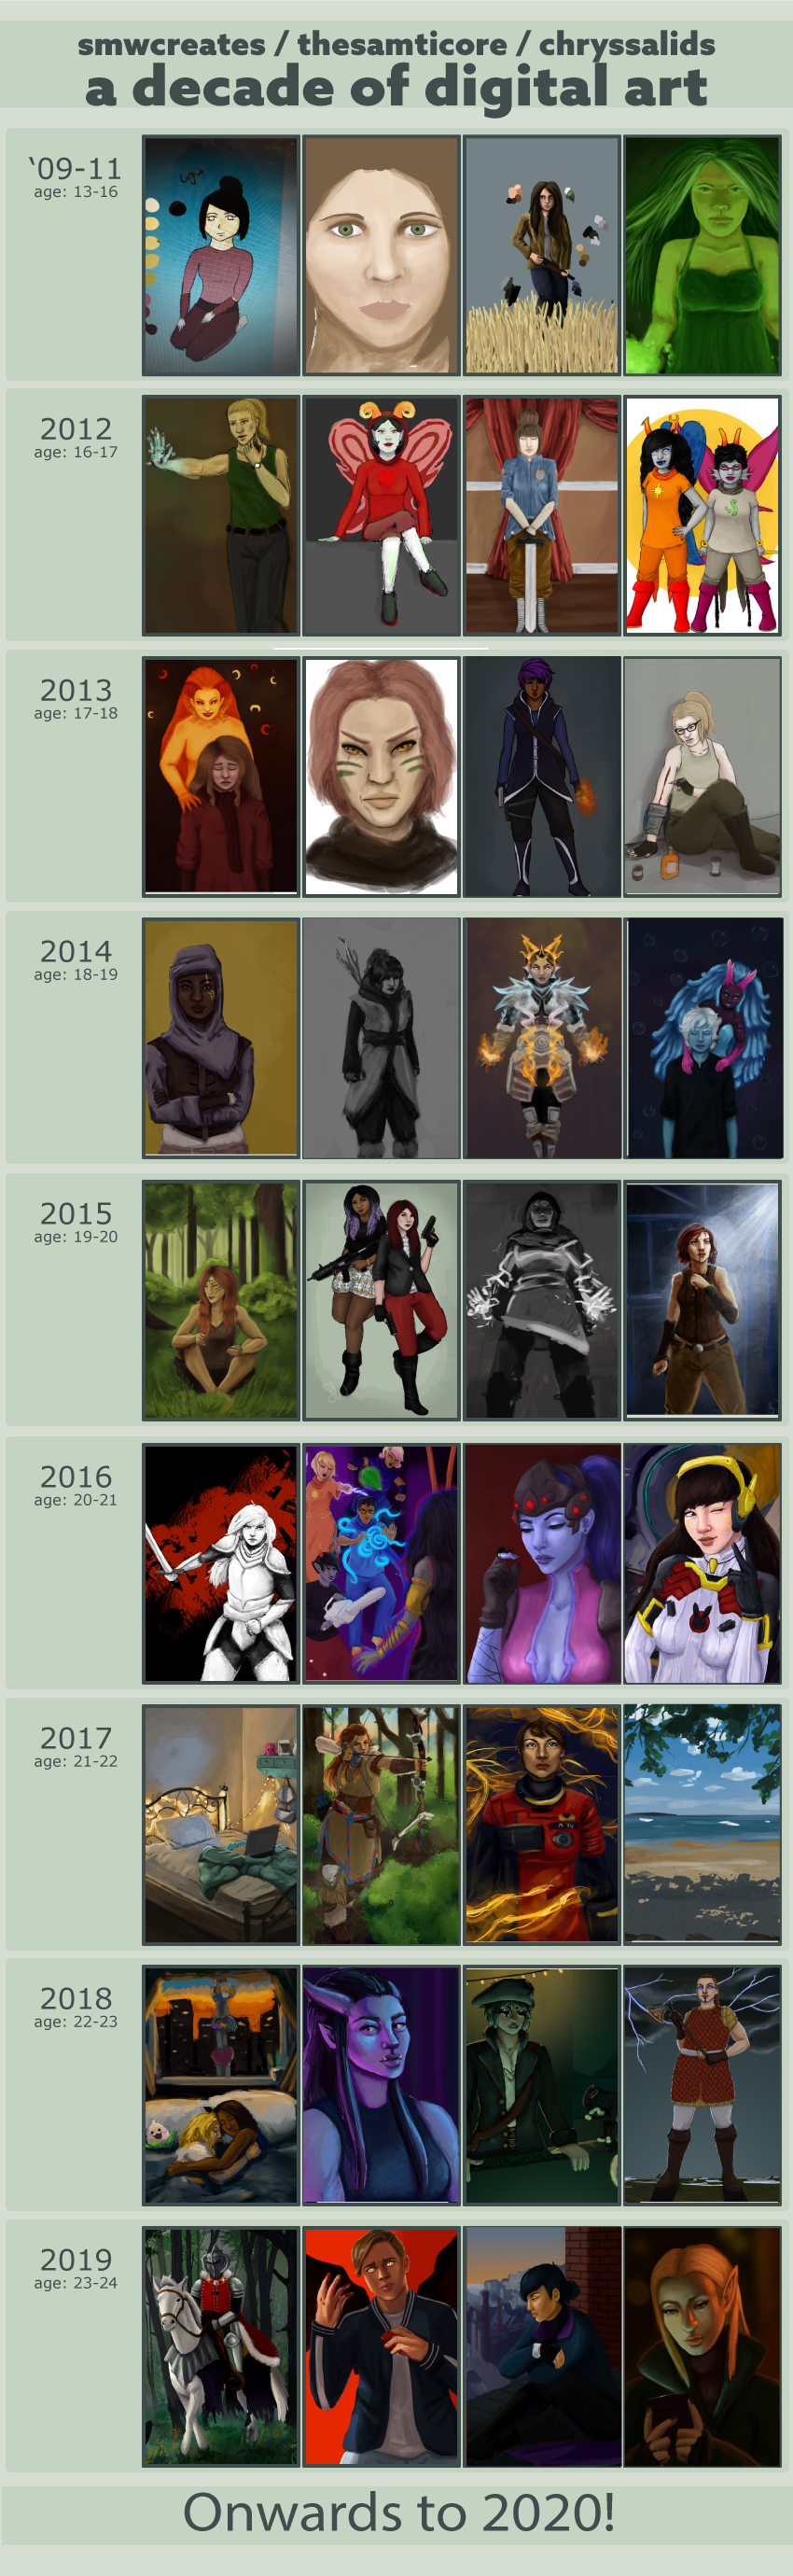 Digital Art: 2009 - 2019 Improvement Meme